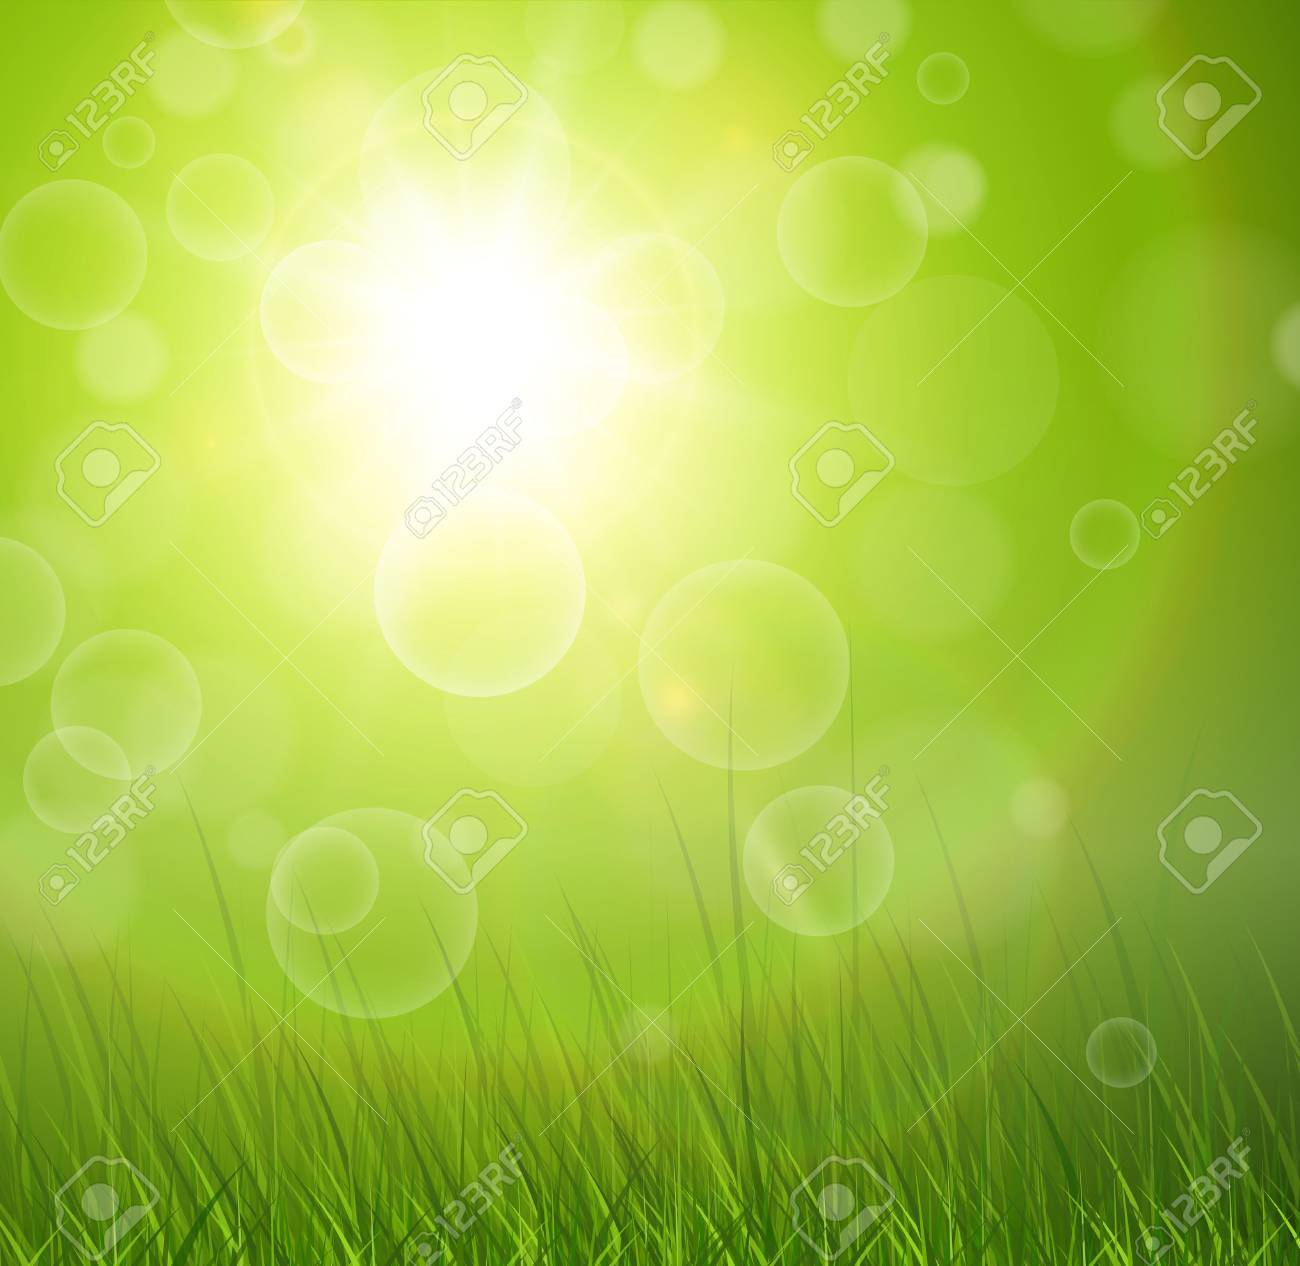 Natural green background with sun and grass. Stock Vector - 17226341